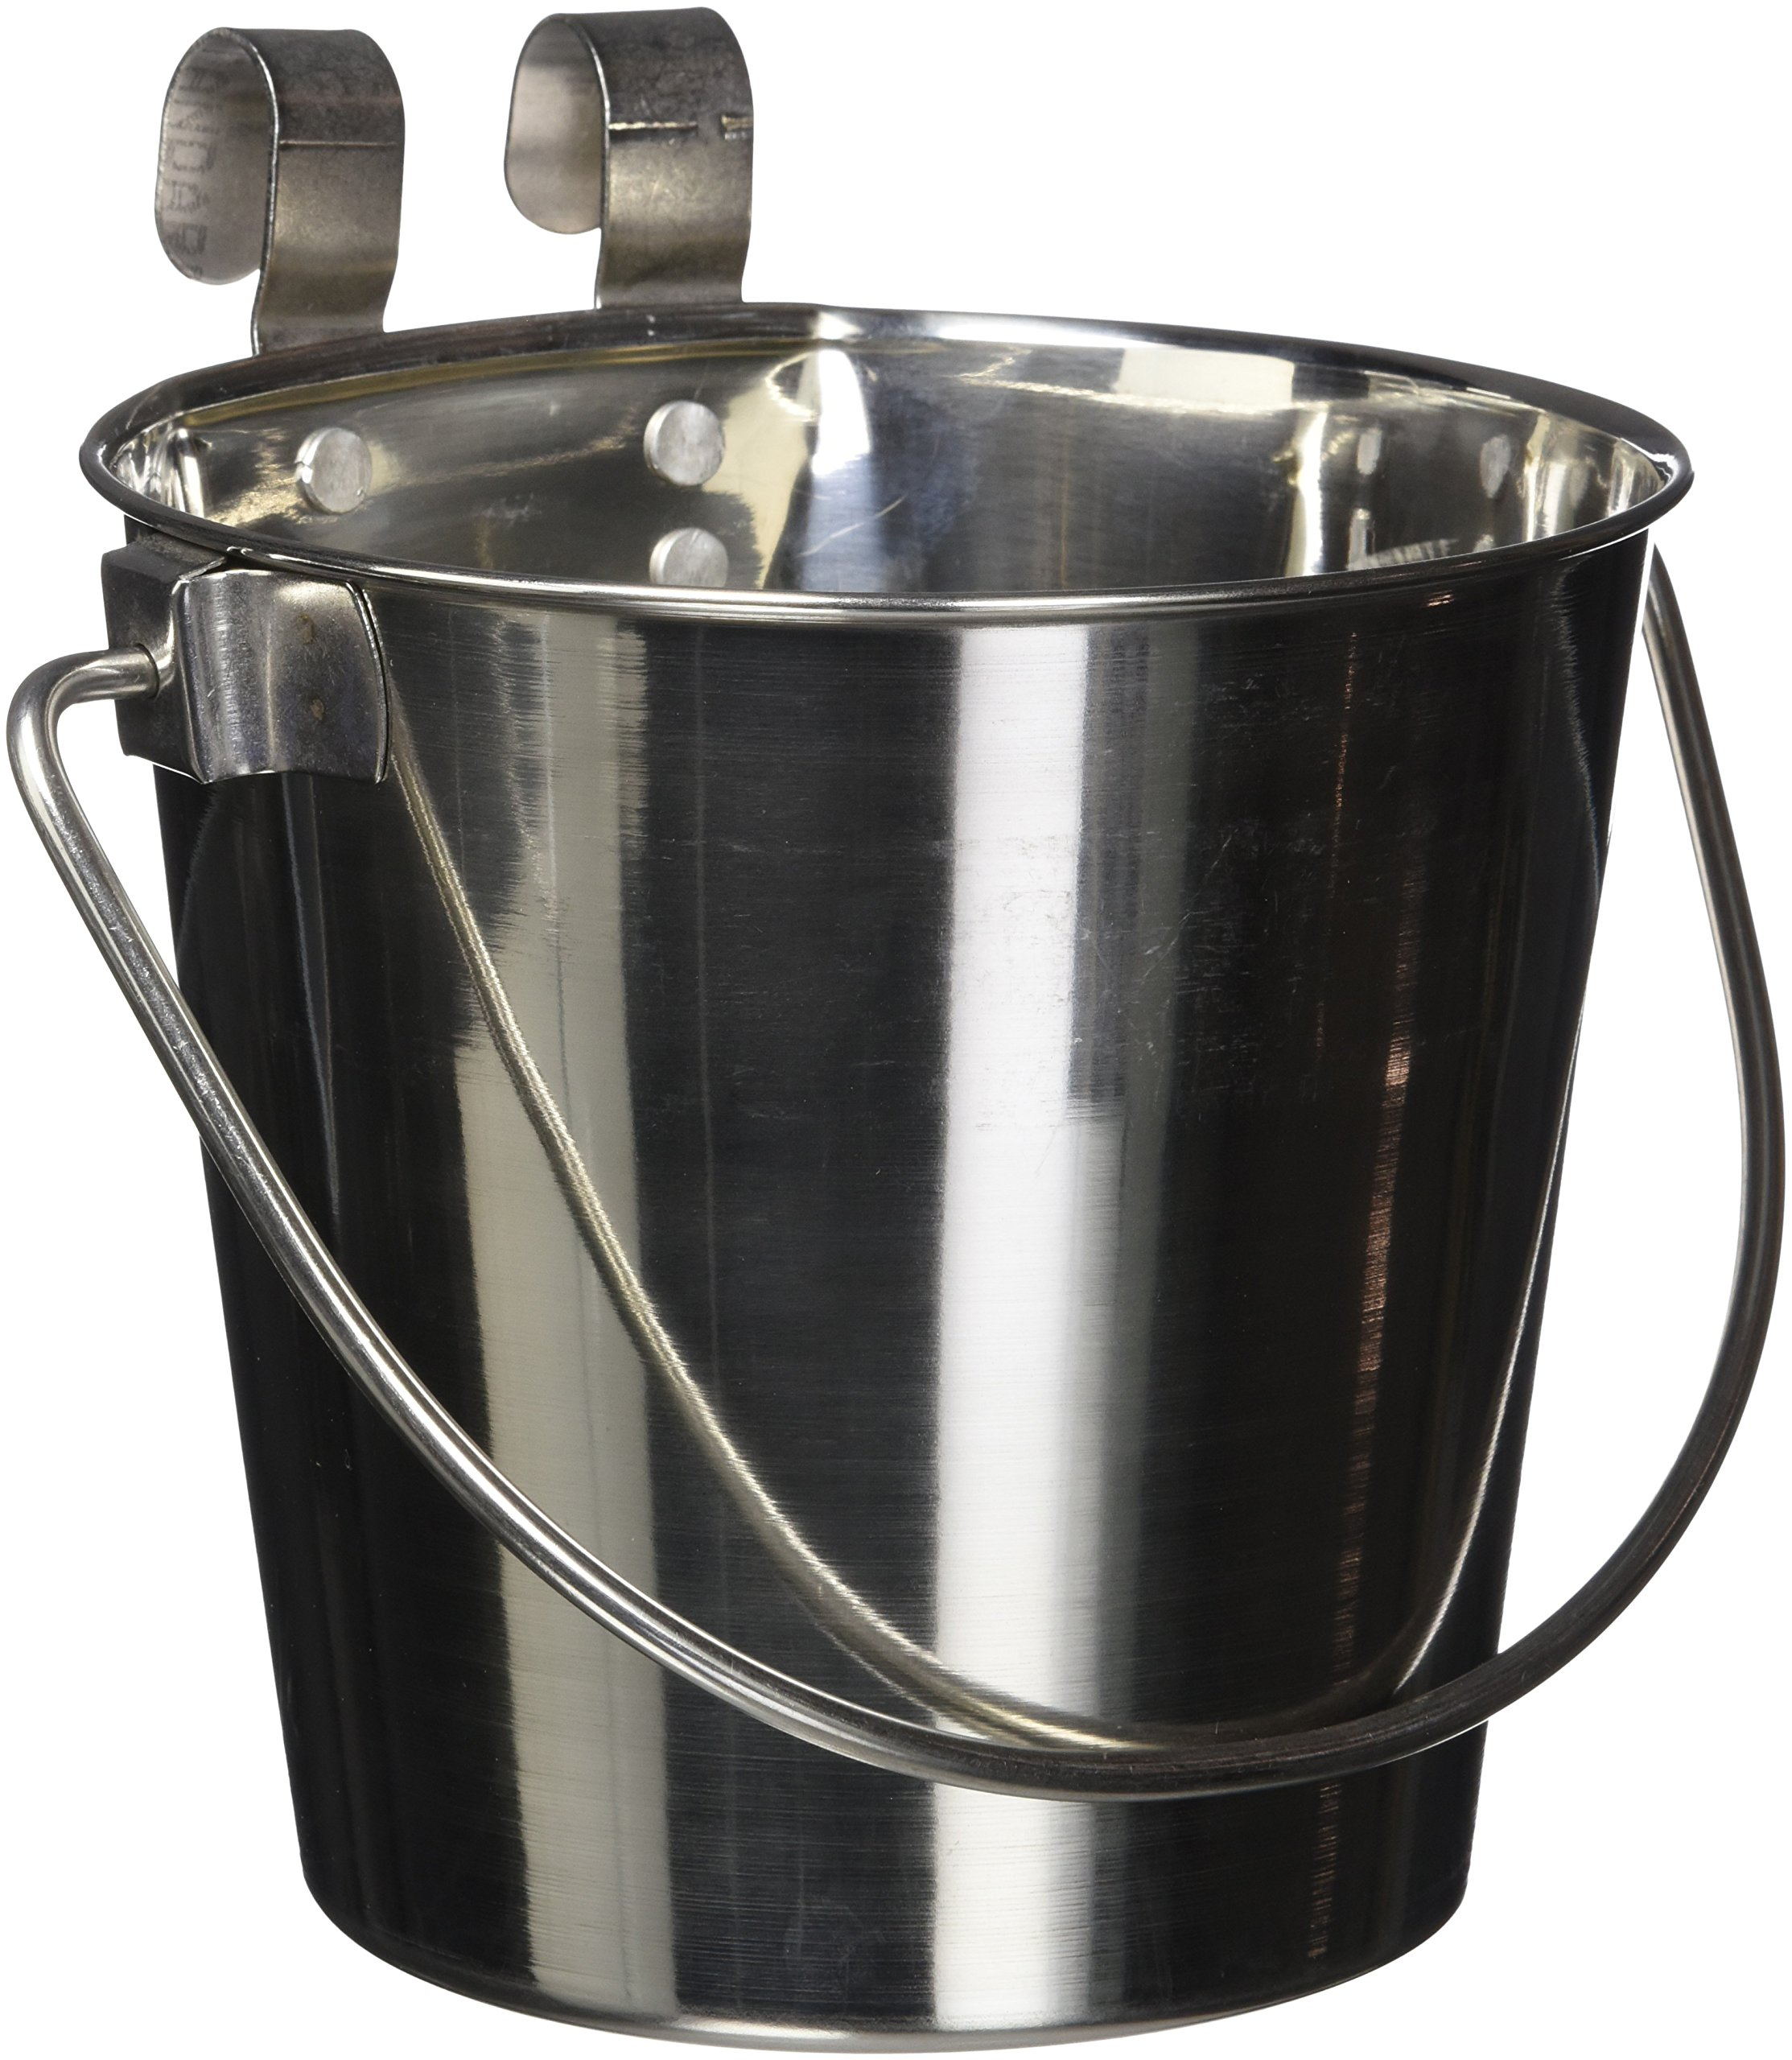 QT Dog Flat Sided Stainless Steel Bucket with Hooks, 2 Quart 1